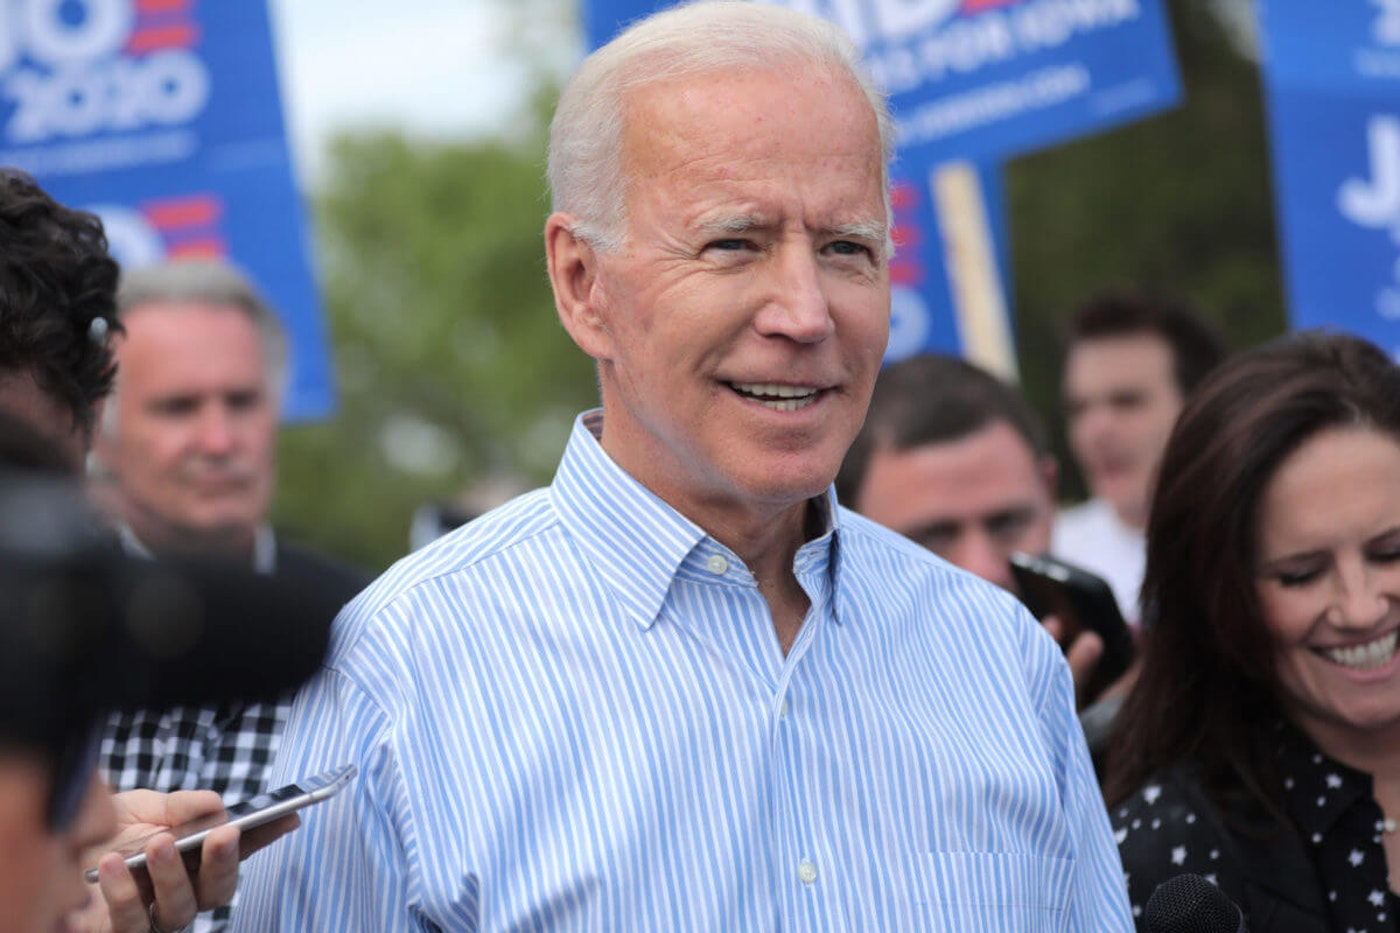 By keeping taxes flat for 98% of Americans, Biden says his plan will help lift the working class (Shutterstock).